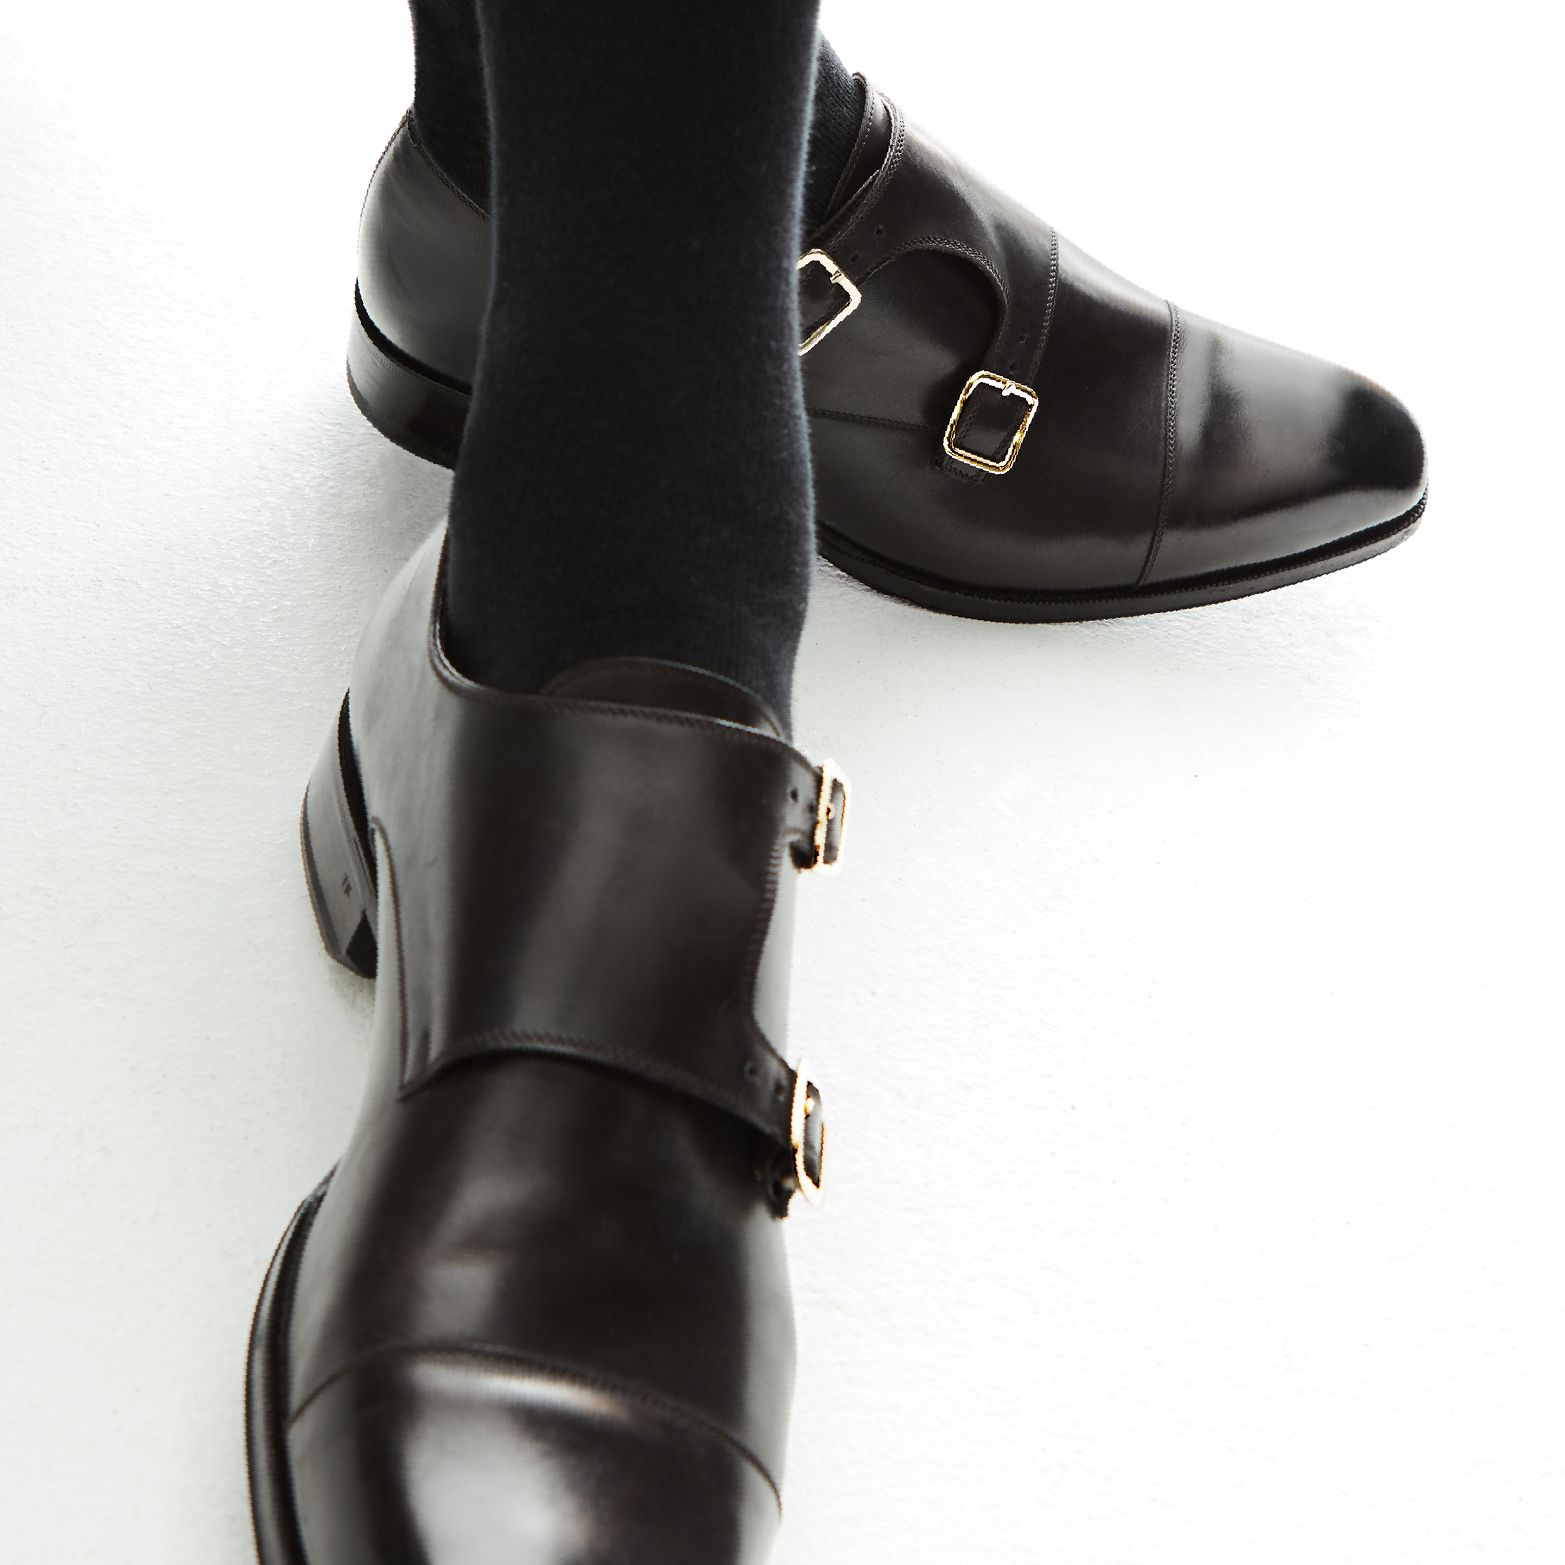 9bf80f06d41ff An essential shoe – a classic double-buckle monk strap style shoe featuring  the Elkan Double Monk Straps. #TOMFORD